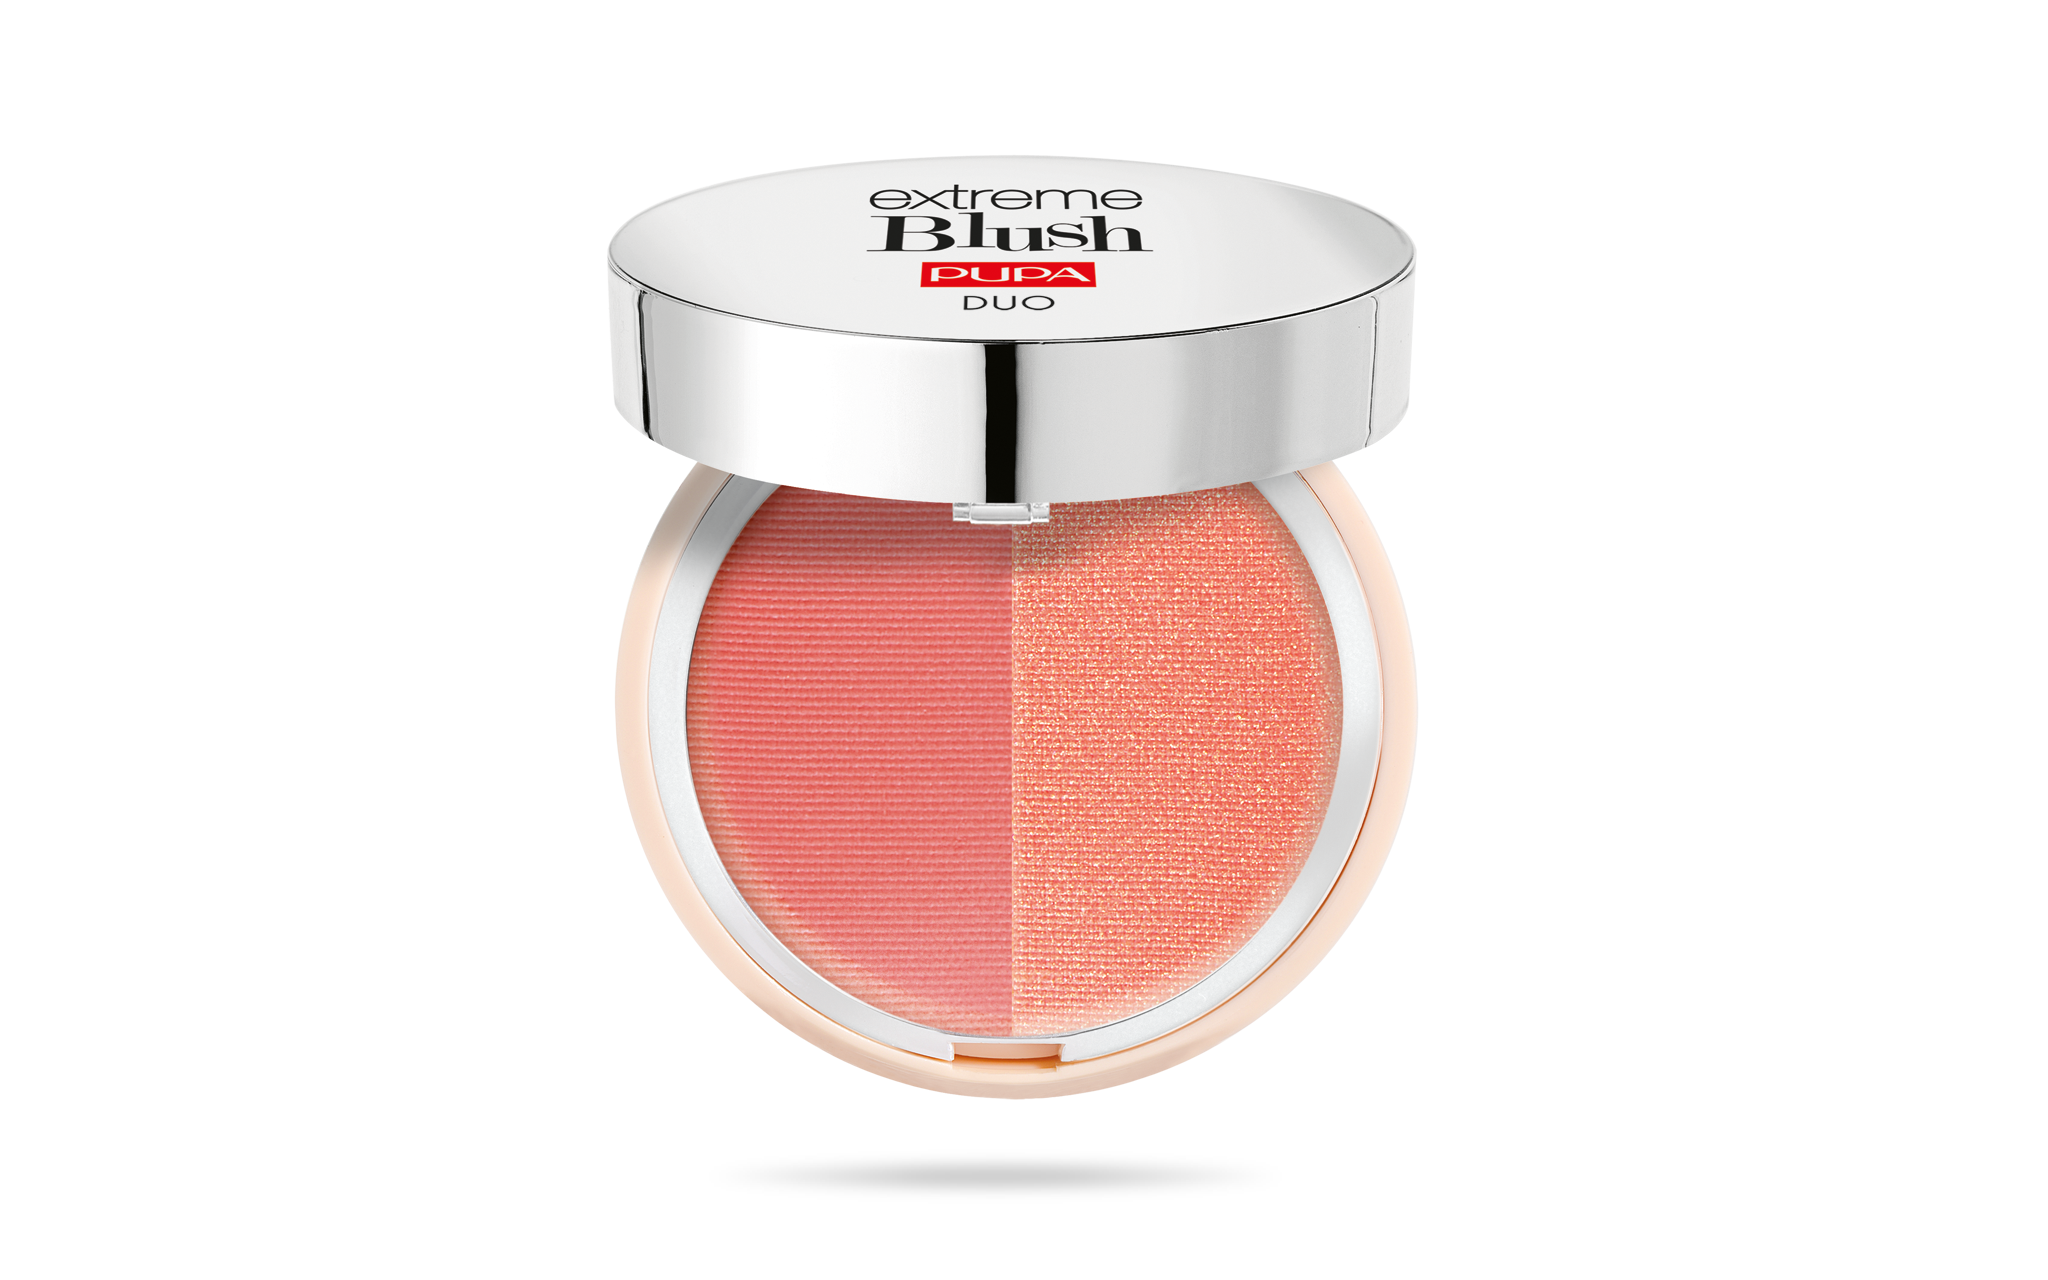 Pupa EXTREME BLUSH DUO 130 Institut Conny Delvaux